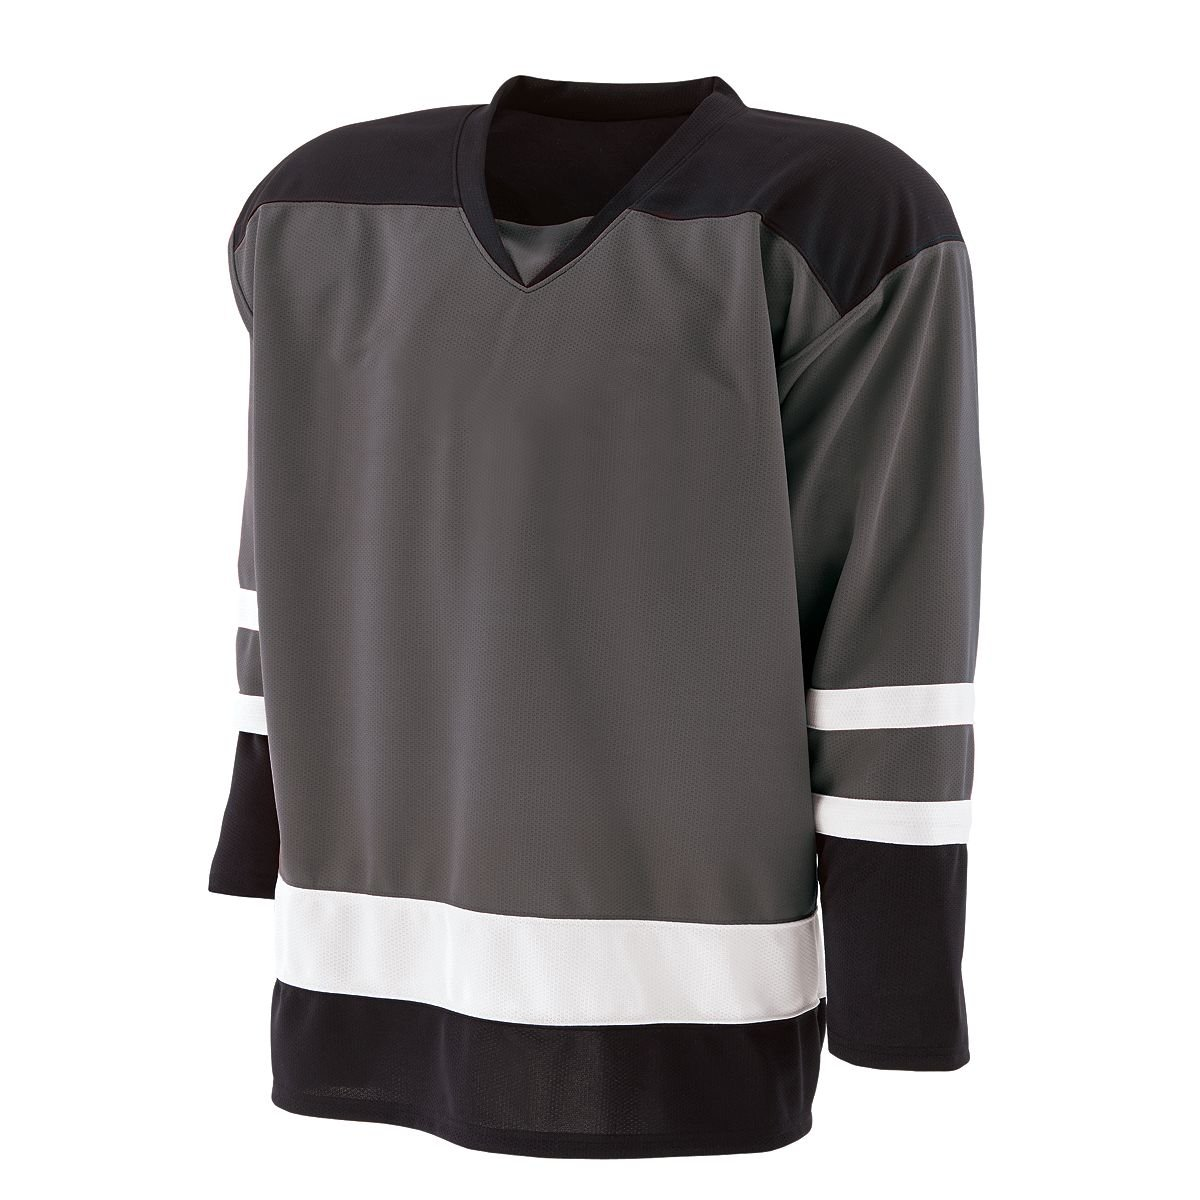 Holloway Faceoff Goalie Jersey GT/BK/WH 2XL 226600